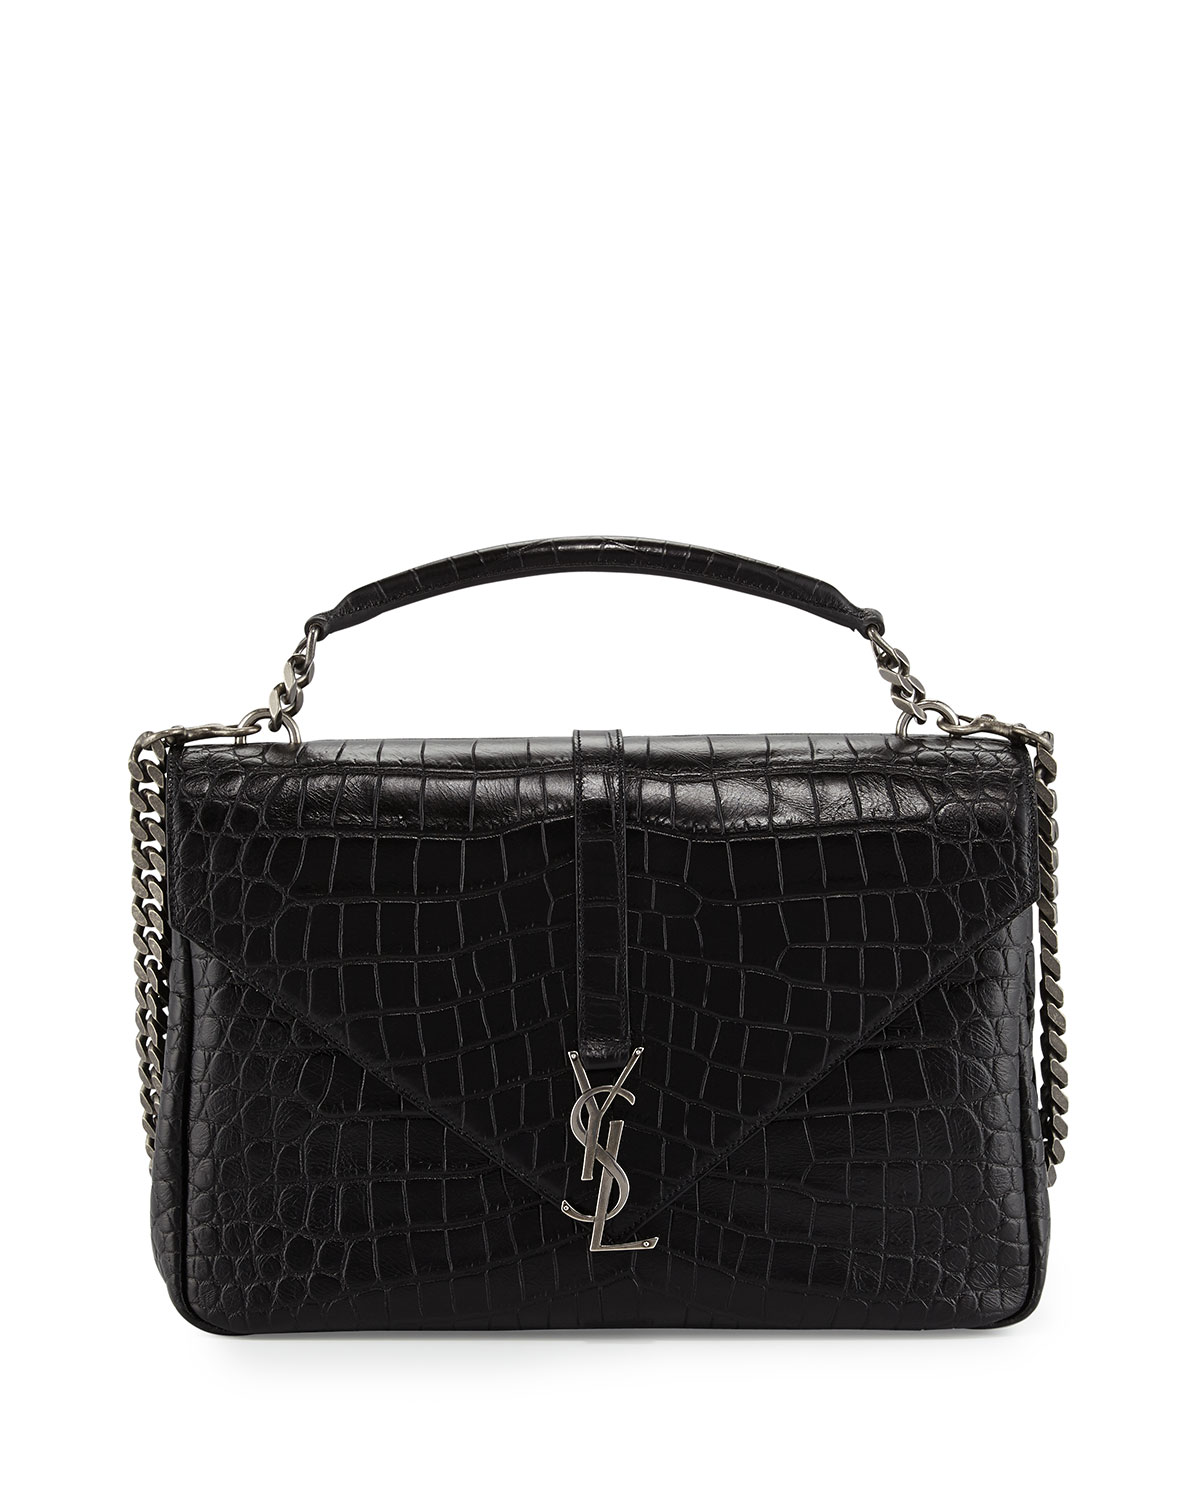 3c11a386a922 Saint Laurent Monogram College Large Crocodile-Embossed Shoulder Bag ...